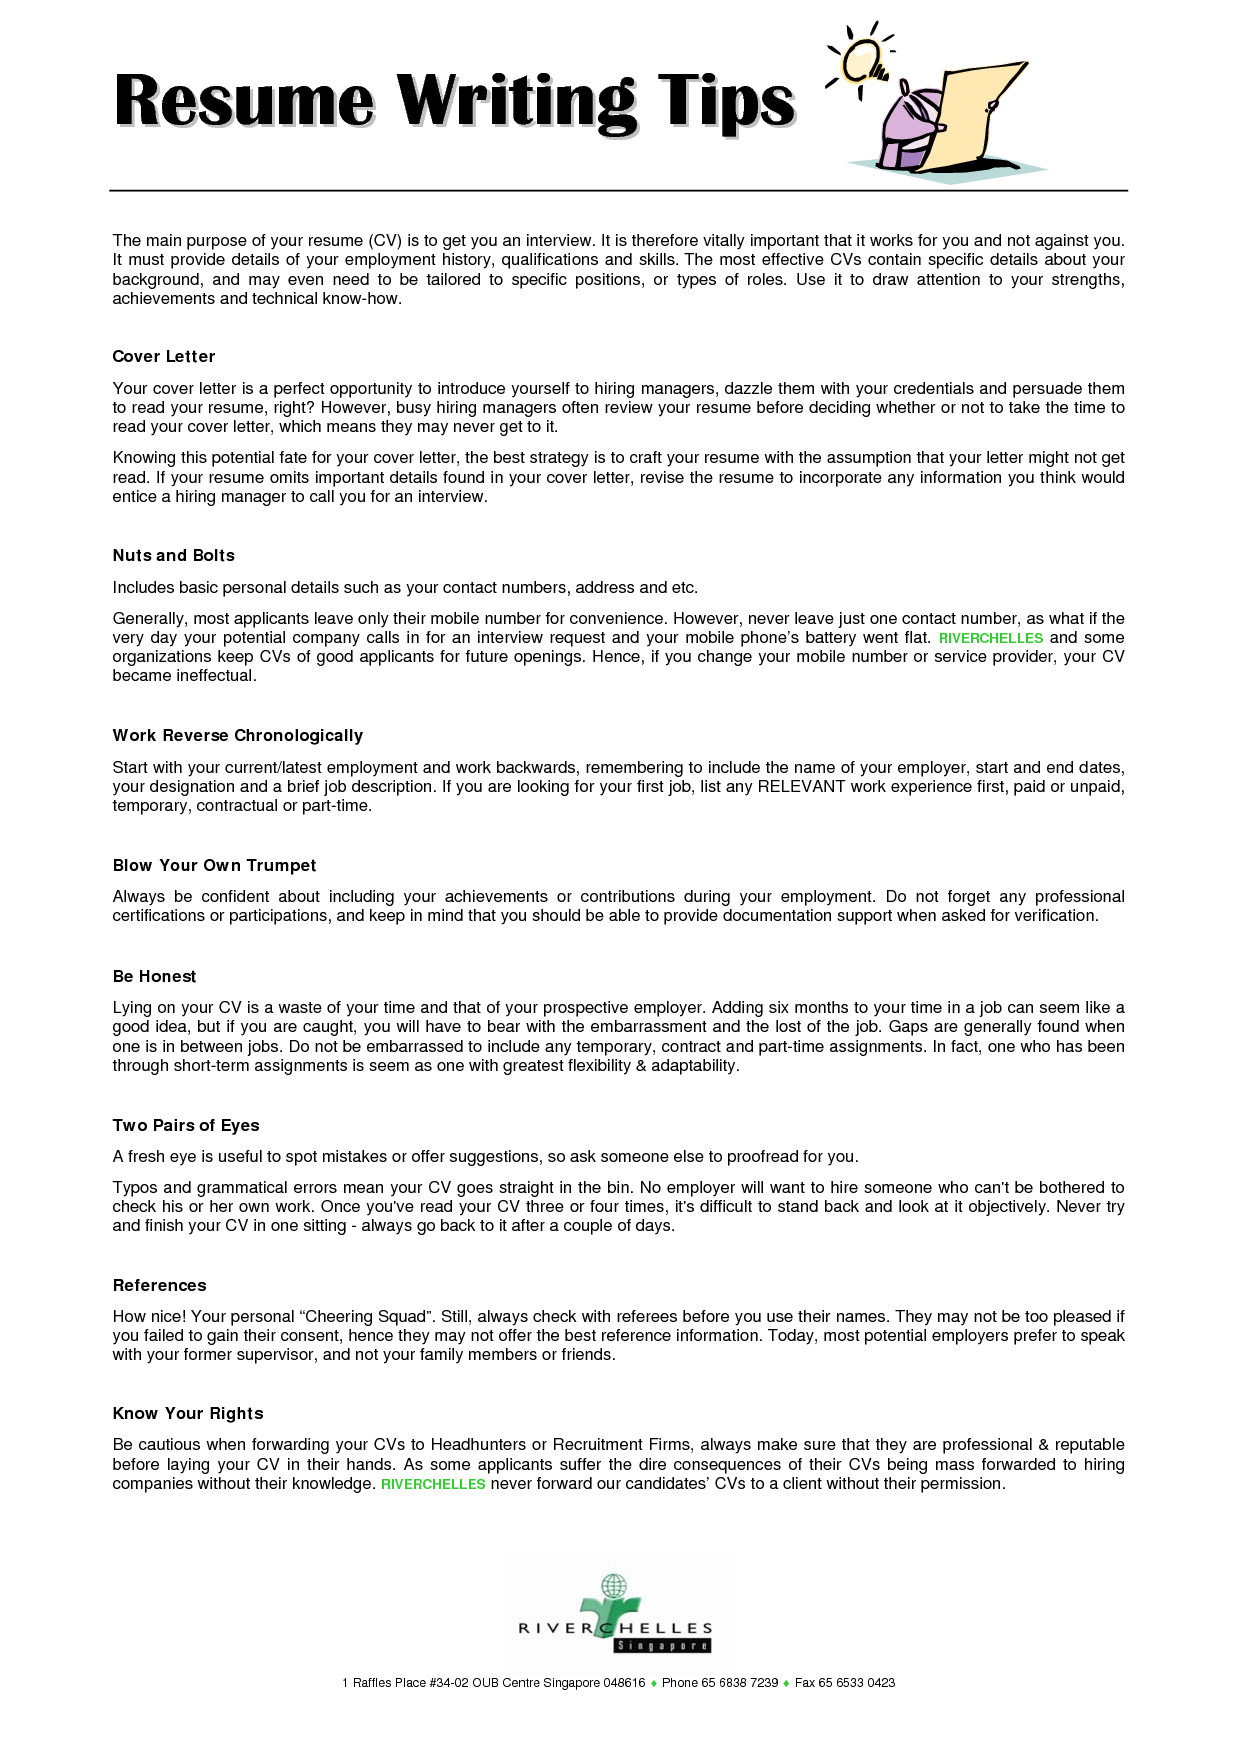 Attractive Resume Writing Tips In Tips For Resume